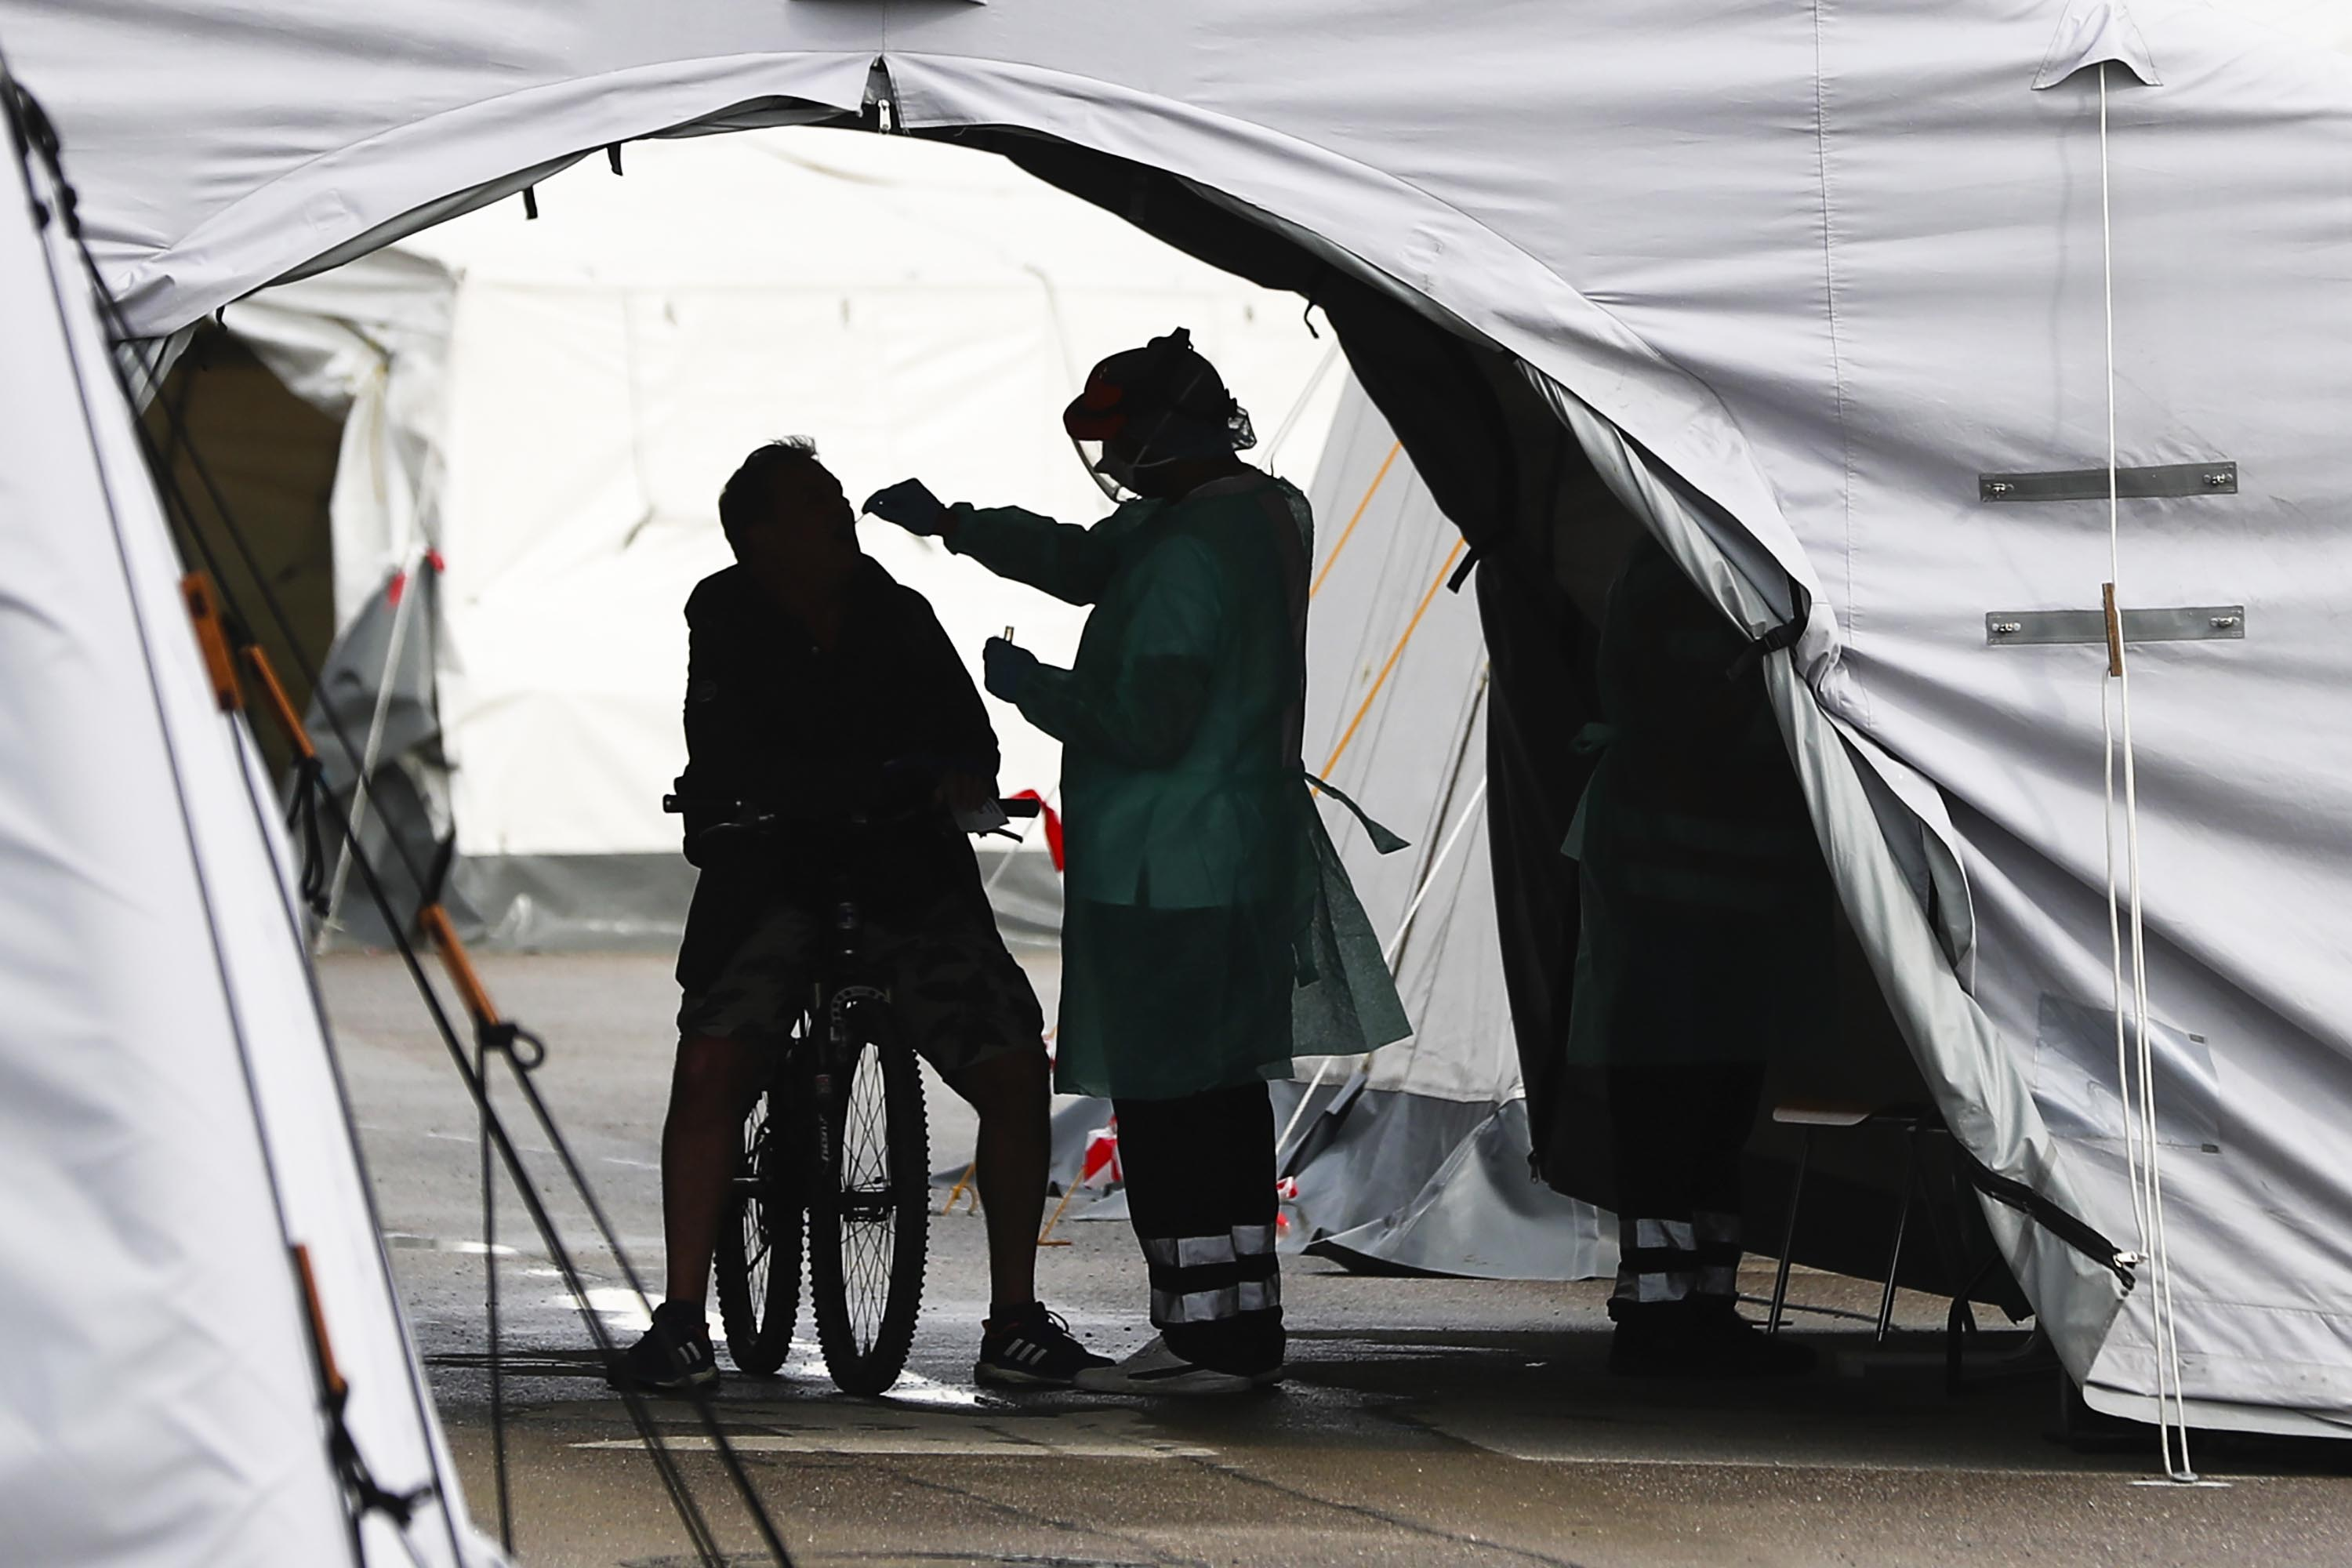 A medical worker takes a sample at a coronavirus test station at the Oktoberfest Theresienwiese grounds in Munich, Germany, on September 24.